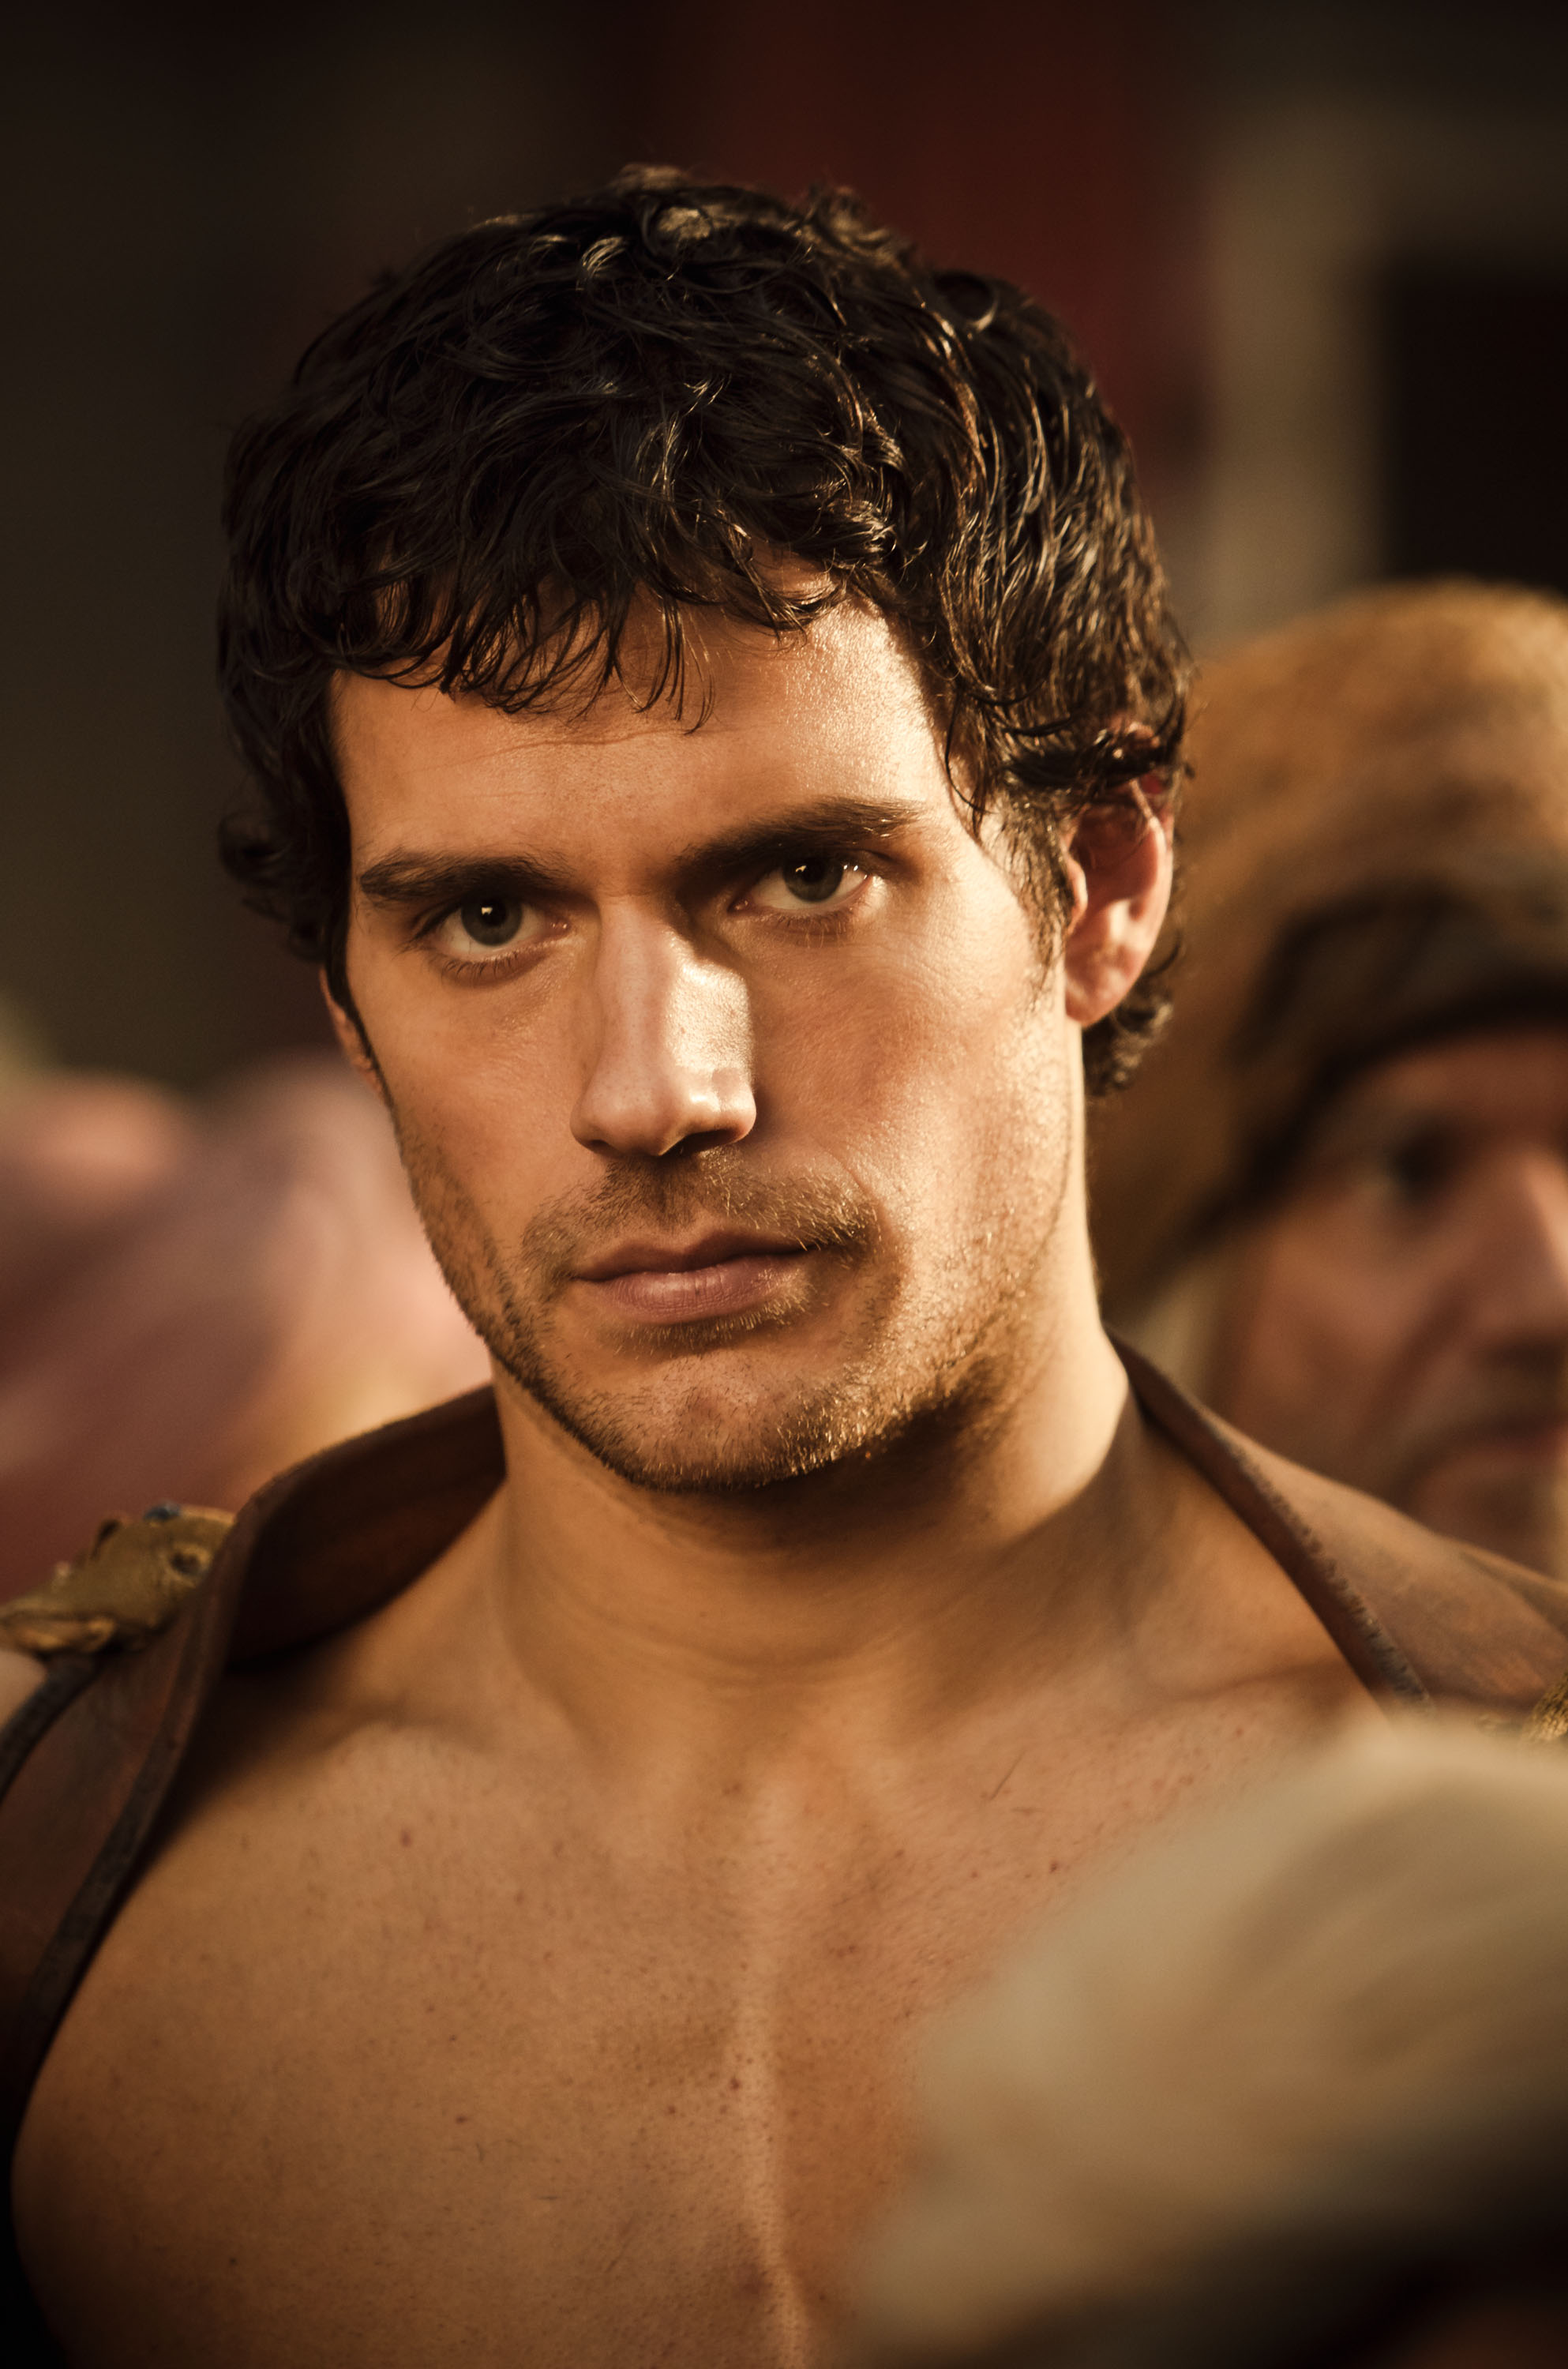 Henry Cavill Shirtless Forever